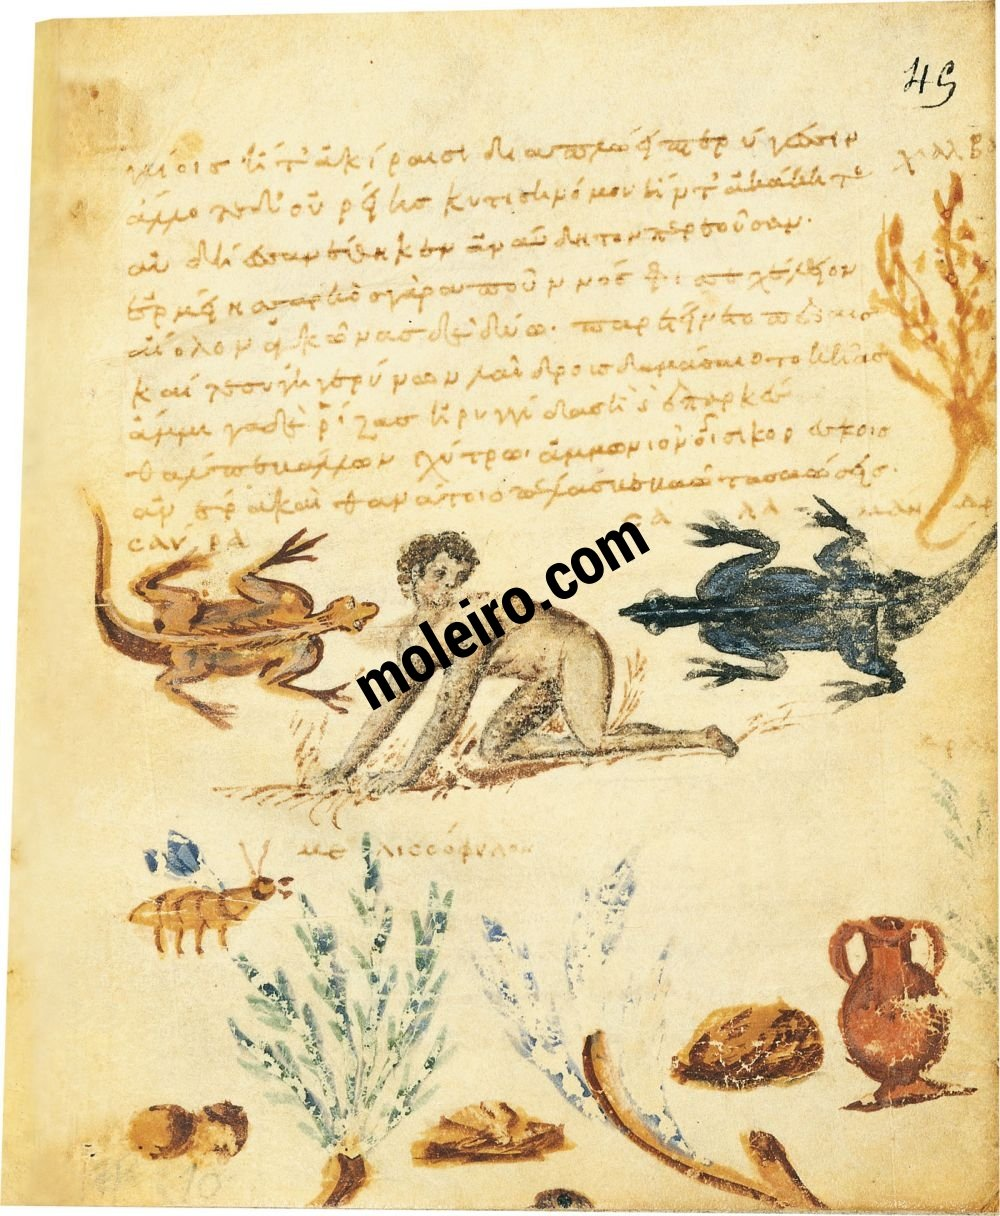 Theriaka and Alexipharmaka by Nicander folio 45r